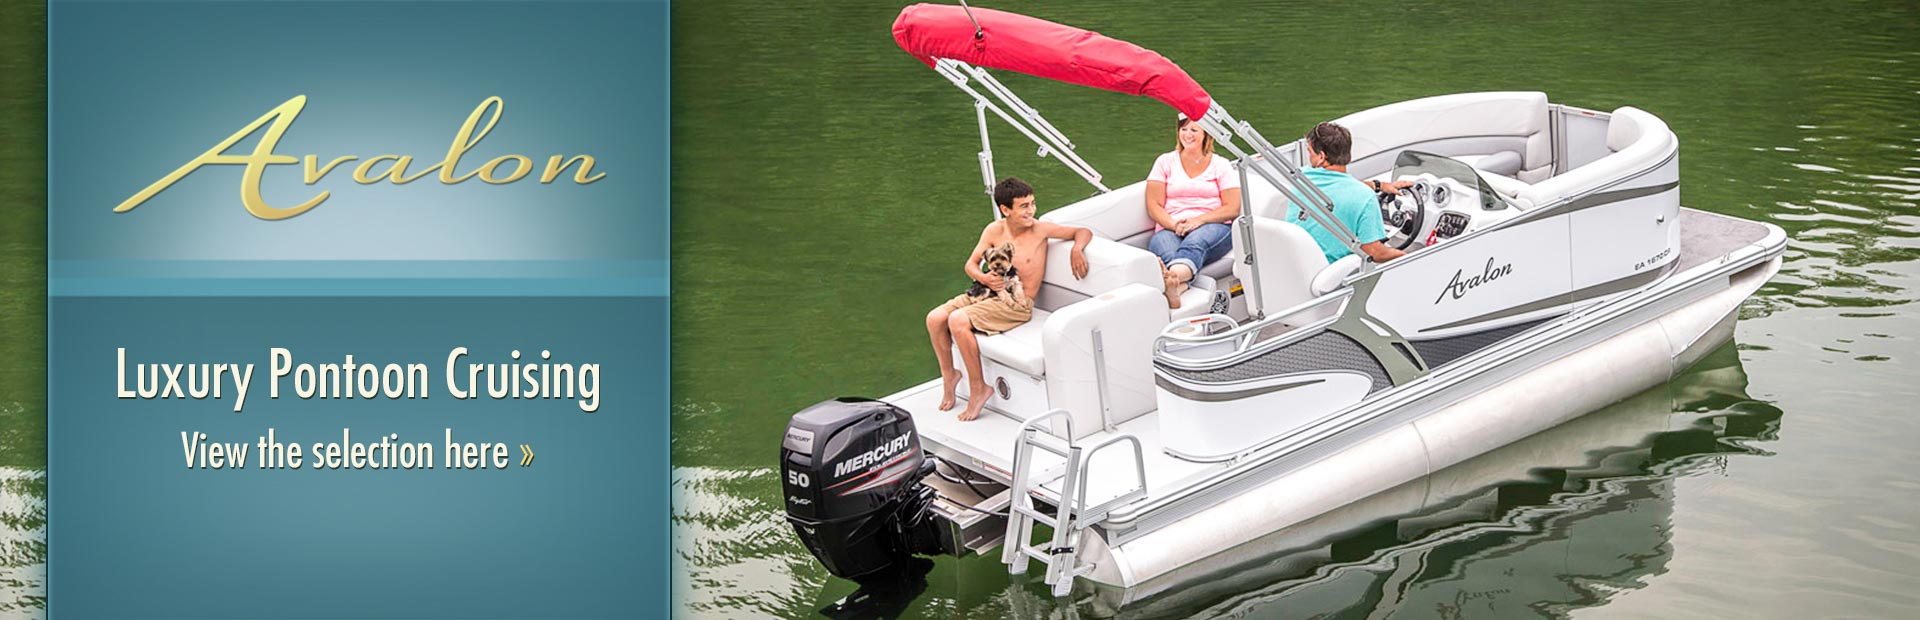 Avalon Luxury Pontoon Boats: Click here to view the models.